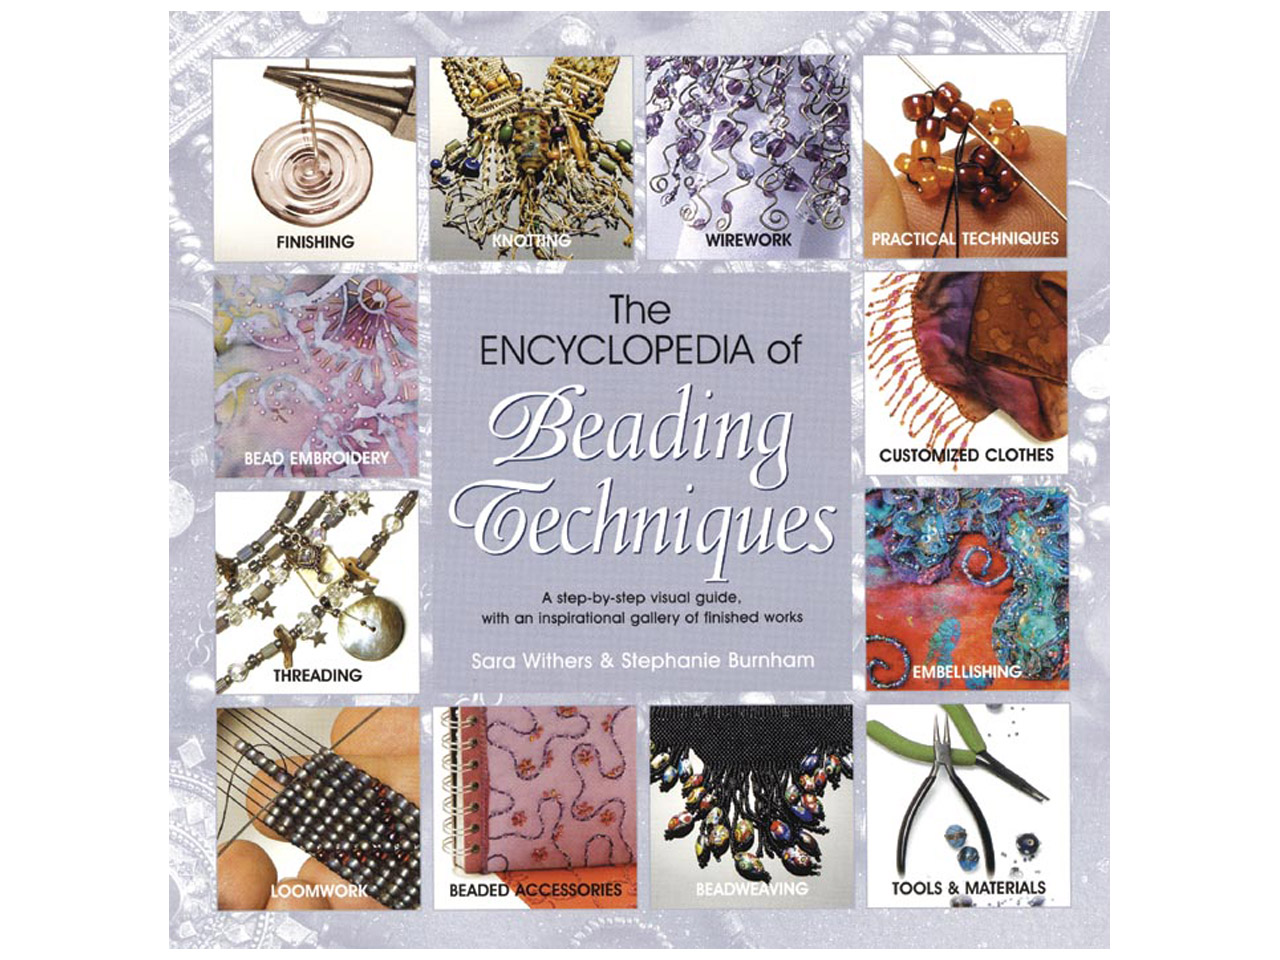 The Encyclopedia Of Beading        Techniques By Sara Withers And     Stephanie Burnham